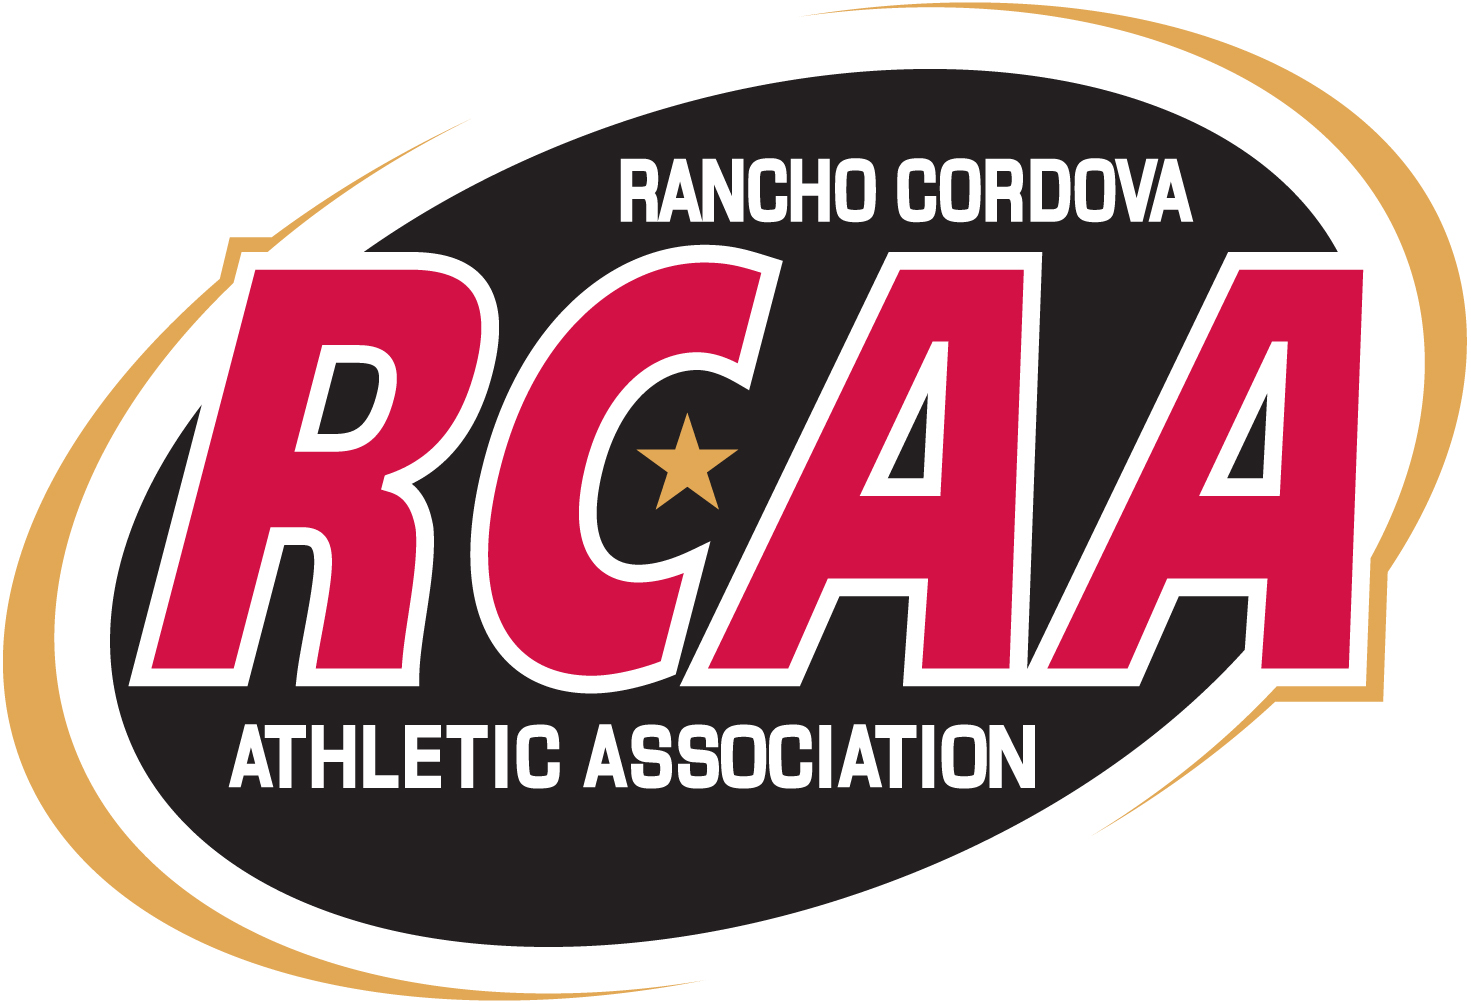 Rancho Cordova Athletic Association Logo